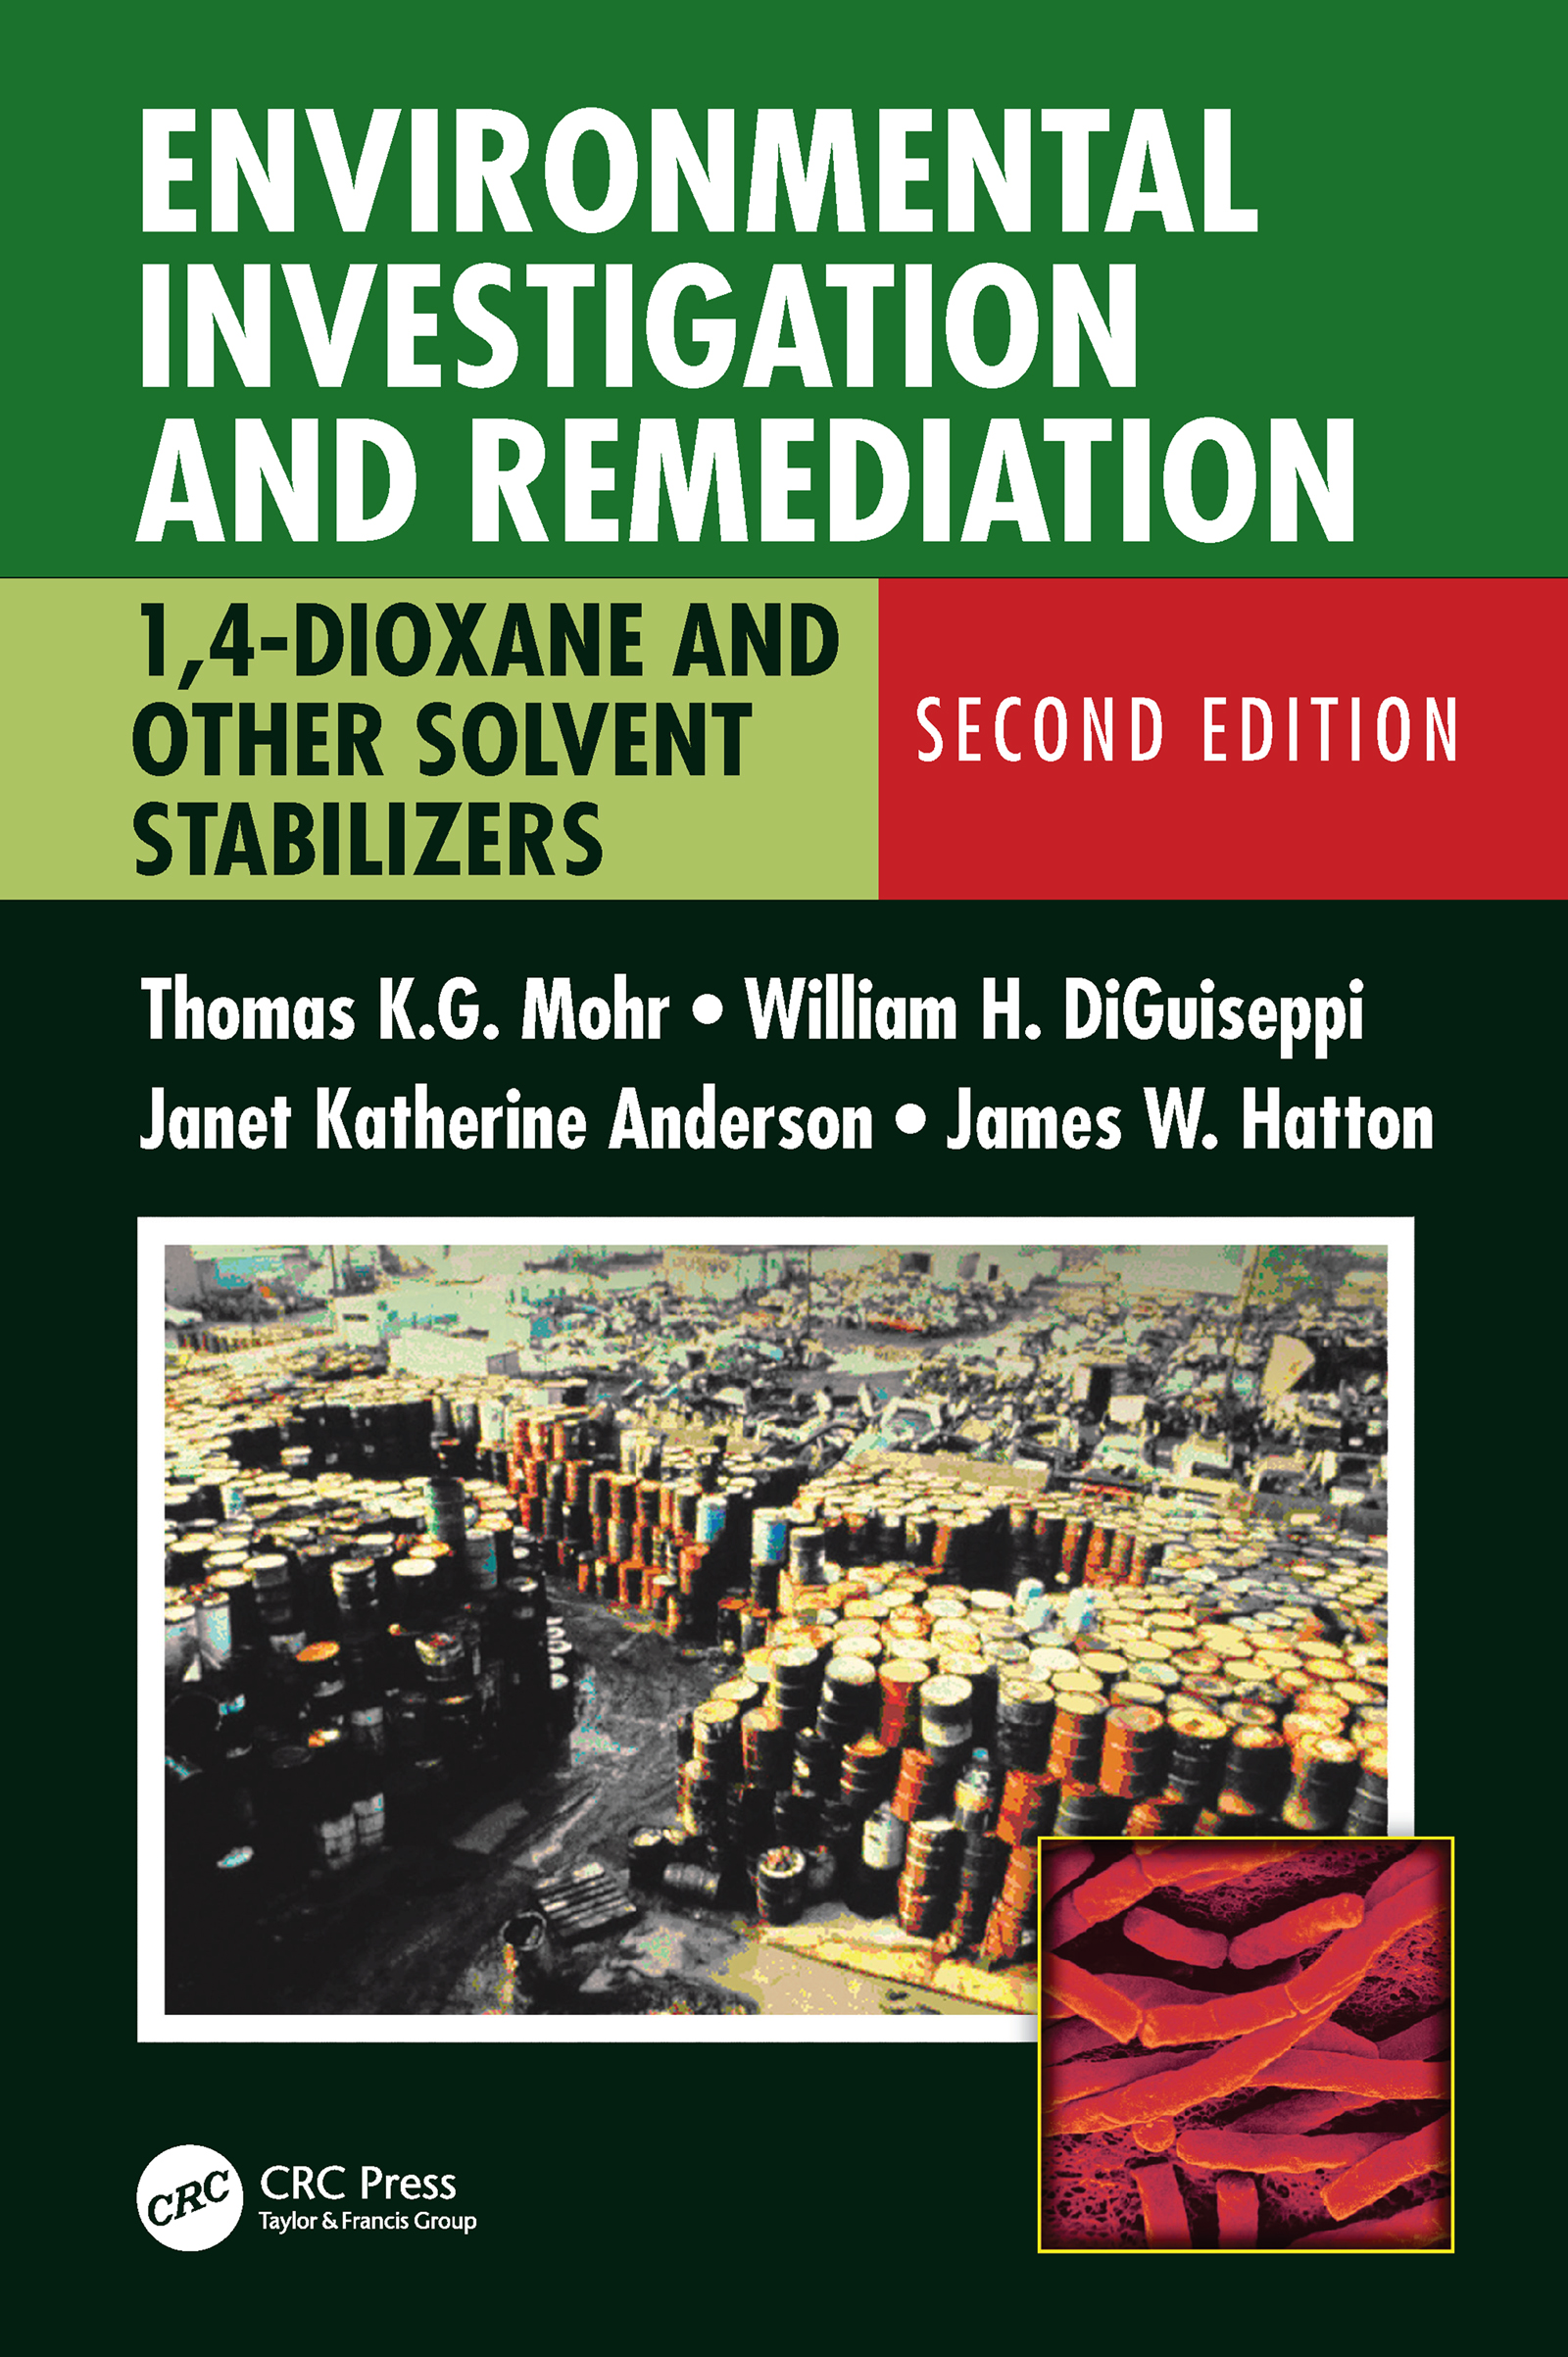 Environmental Investigation and Remediation: 1,4-Dioxane and other Solvent Stabilizers, Second Edition book cover